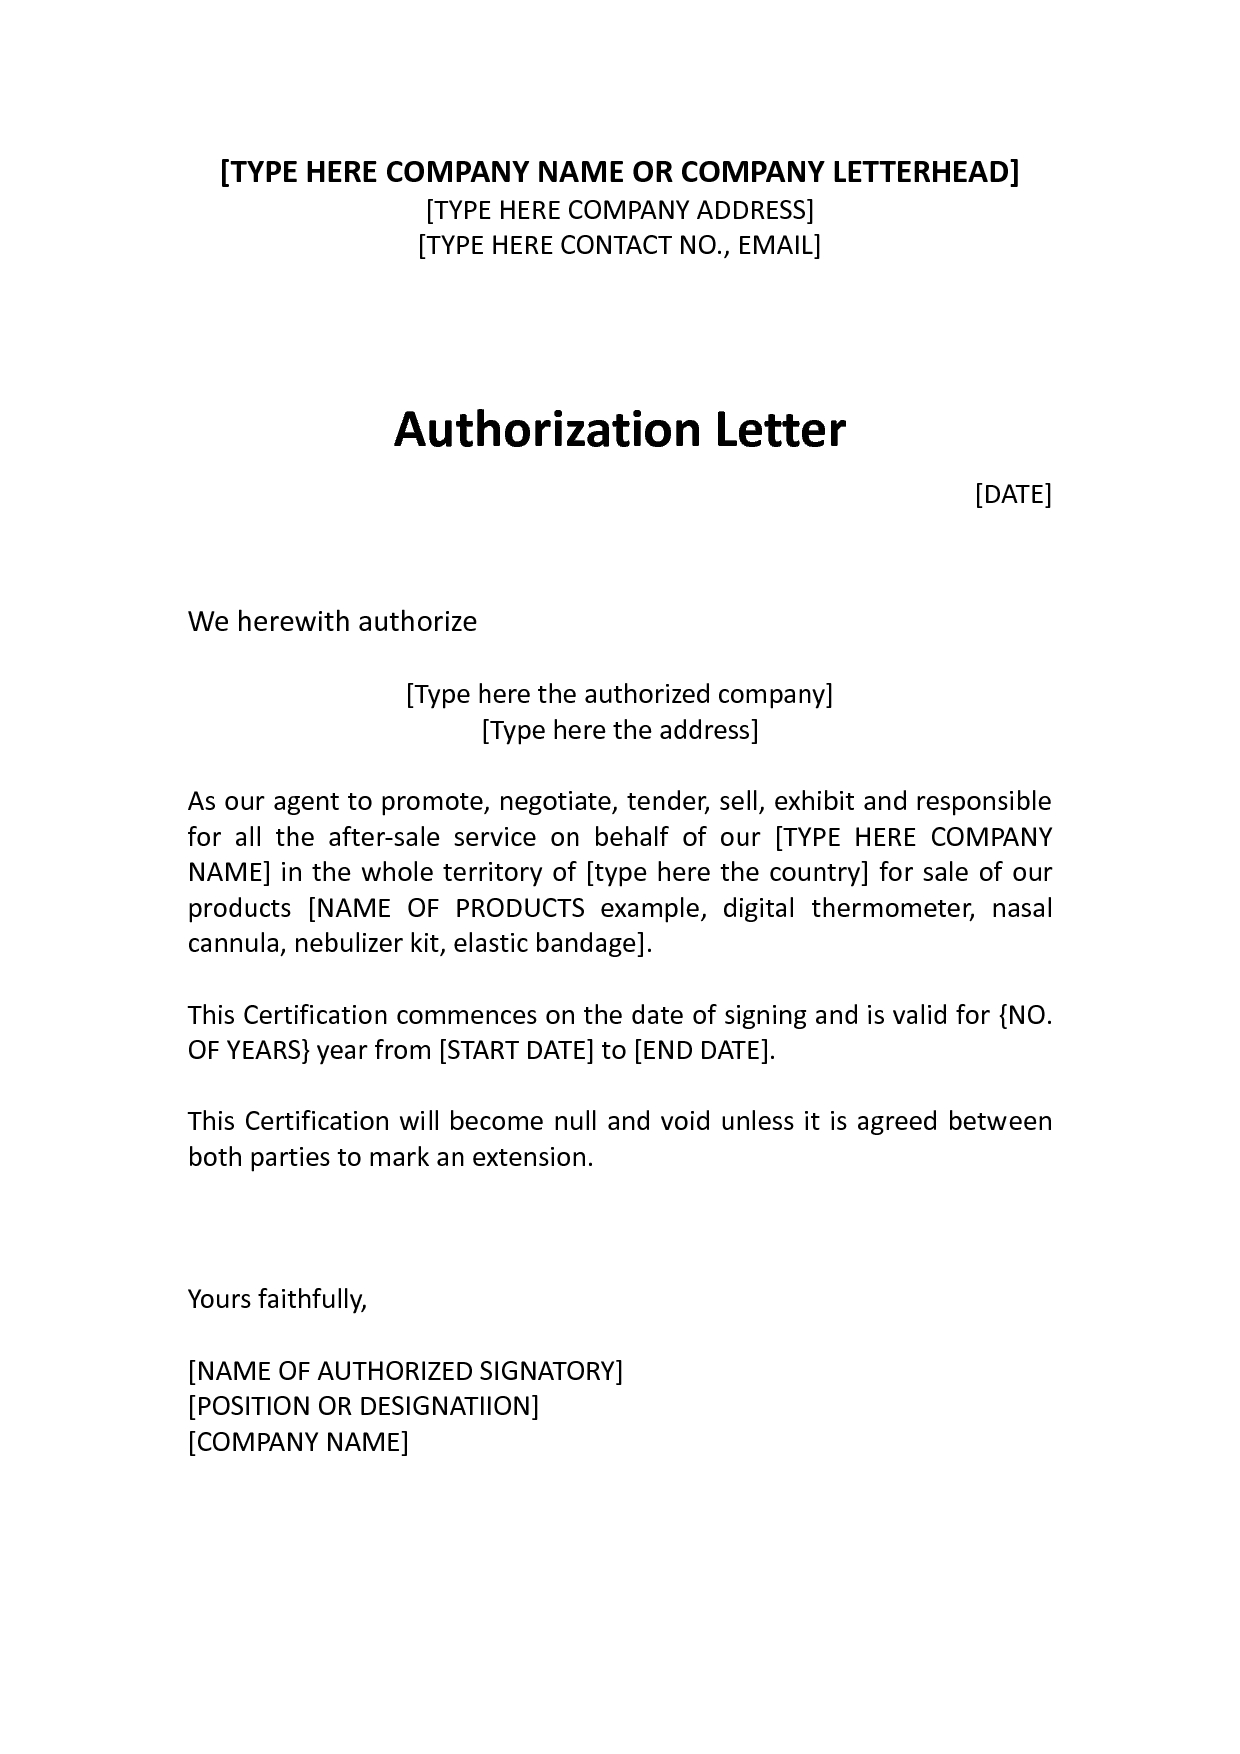 Letter of intent to sell business template examples letter templates letter of intent to sell business template authorization distributor letter sample distributor dealer flashek Gallery